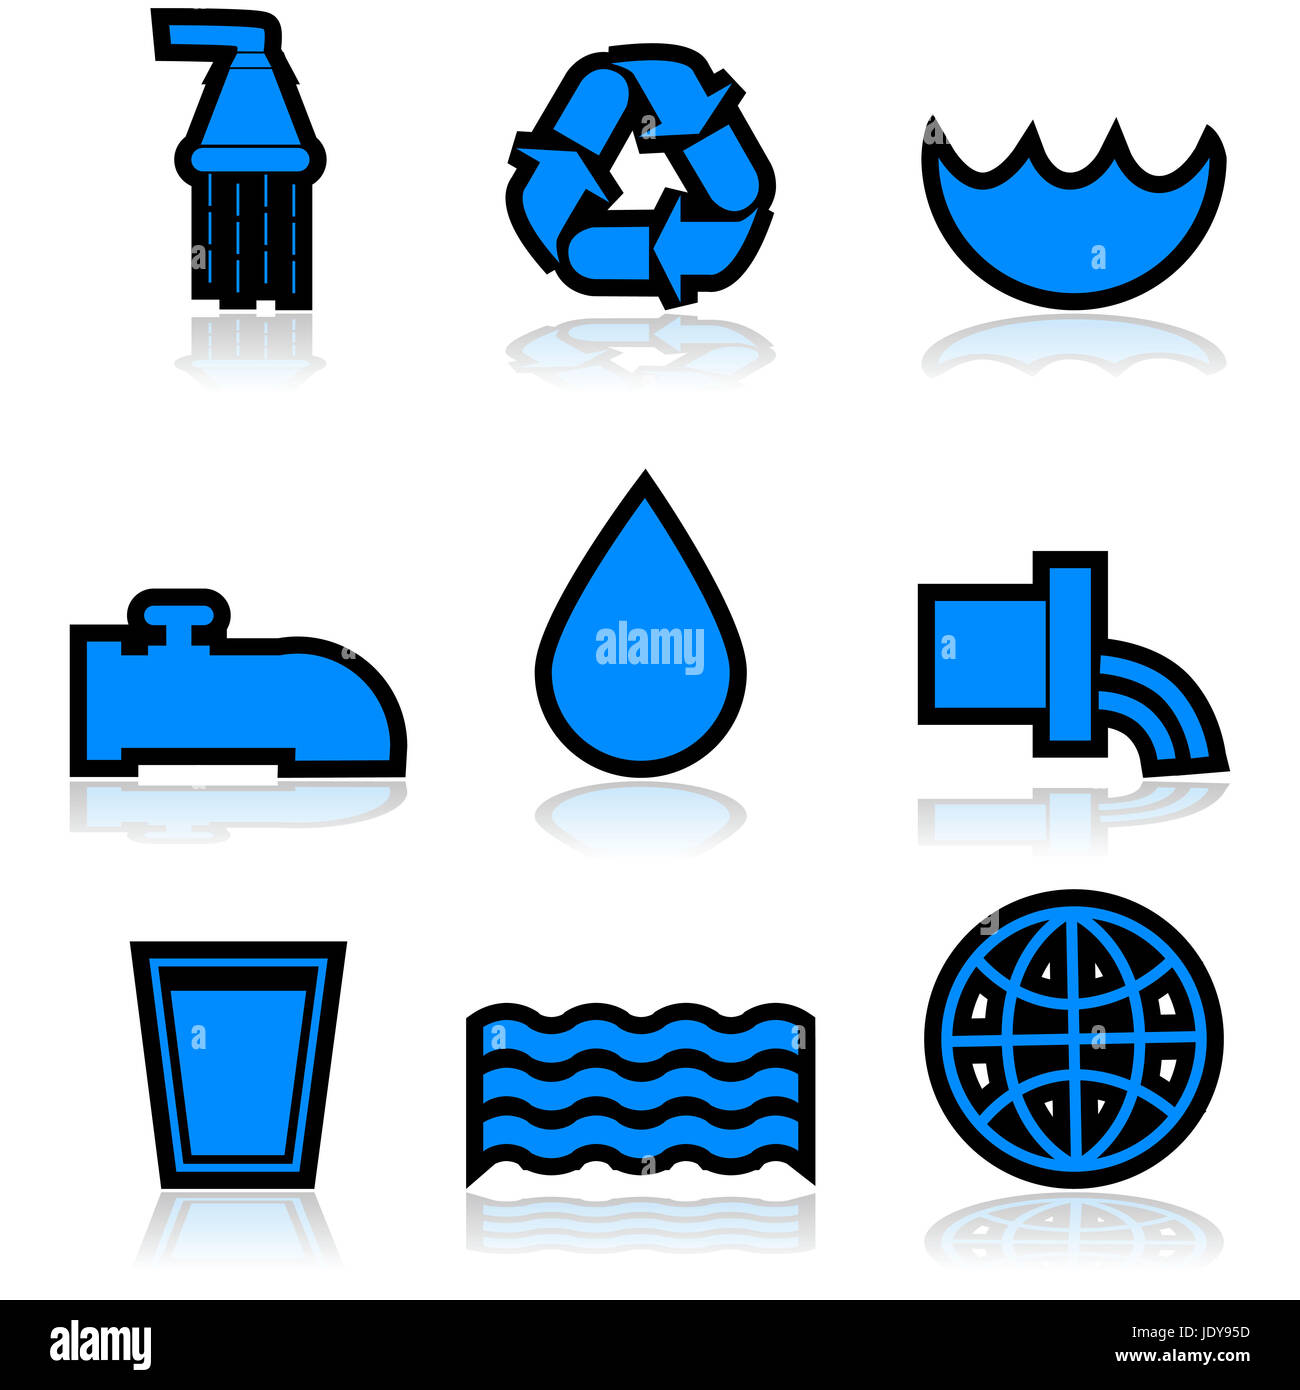 Icon set showing different elements normally associated with water - Stock Image